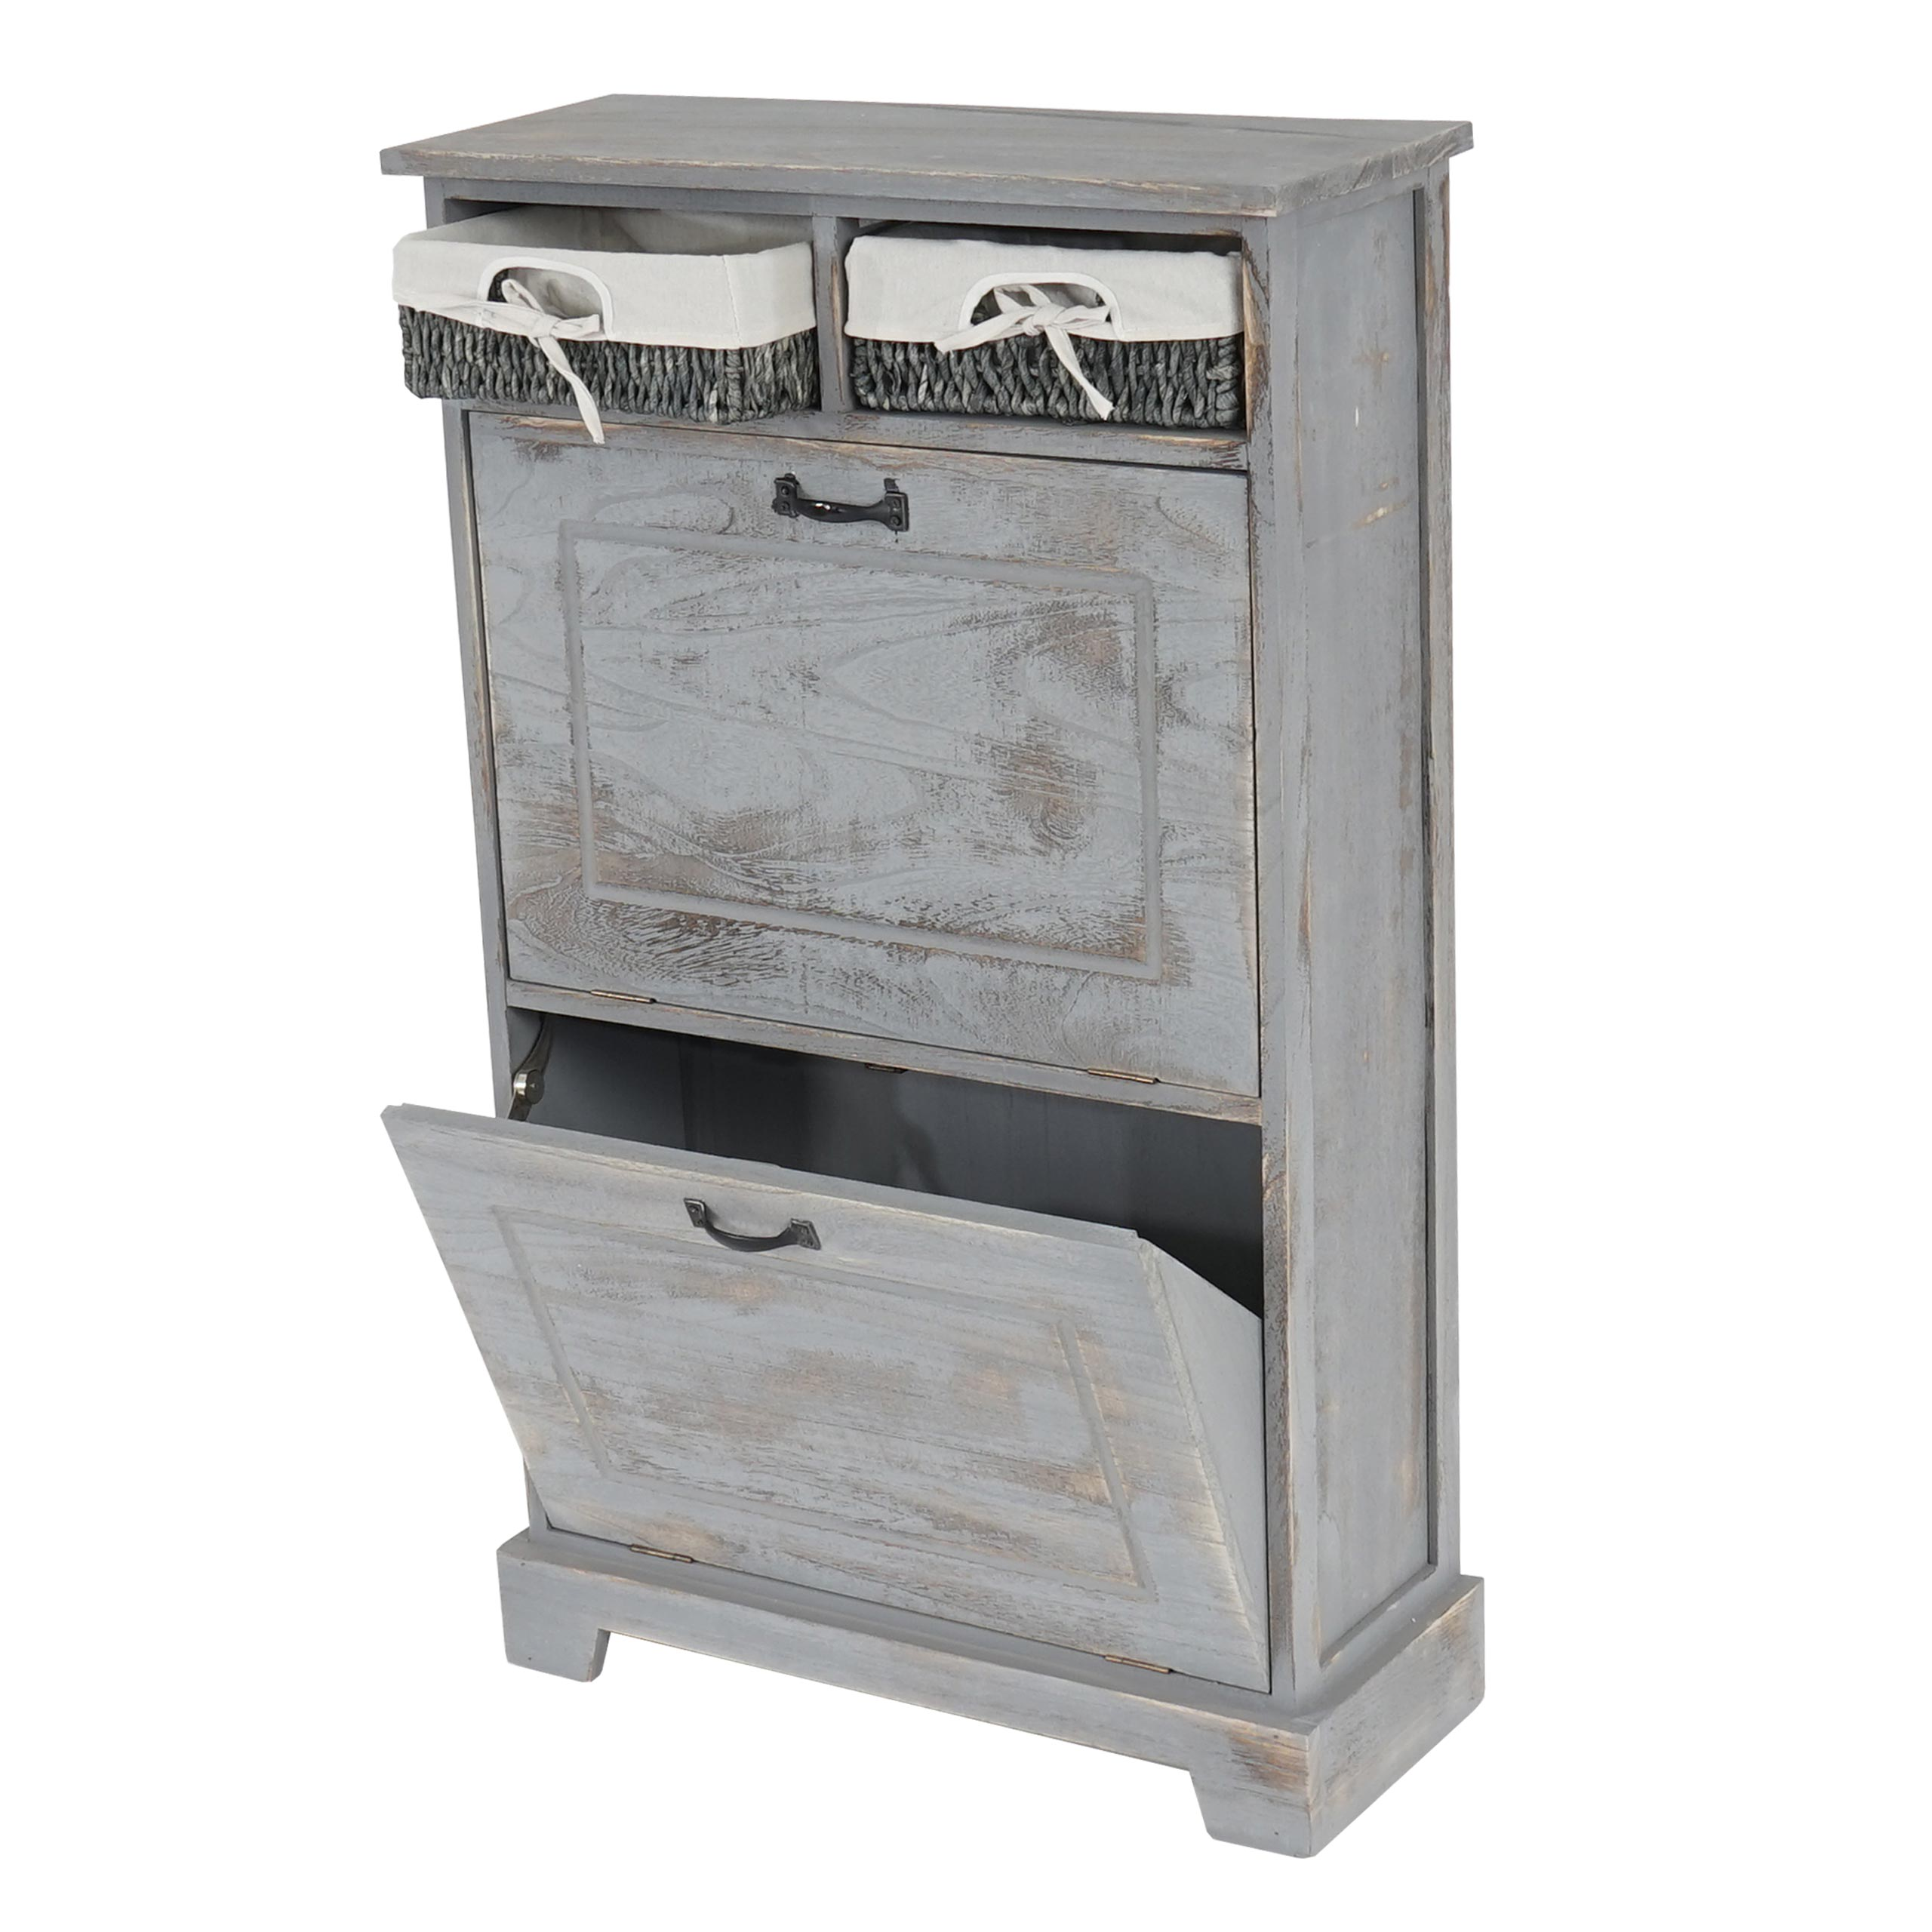 schuhschrank schuhkipper 100x60x25cm shabby look vintage grau ebay. Black Bedroom Furniture Sets. Home Design Ideas